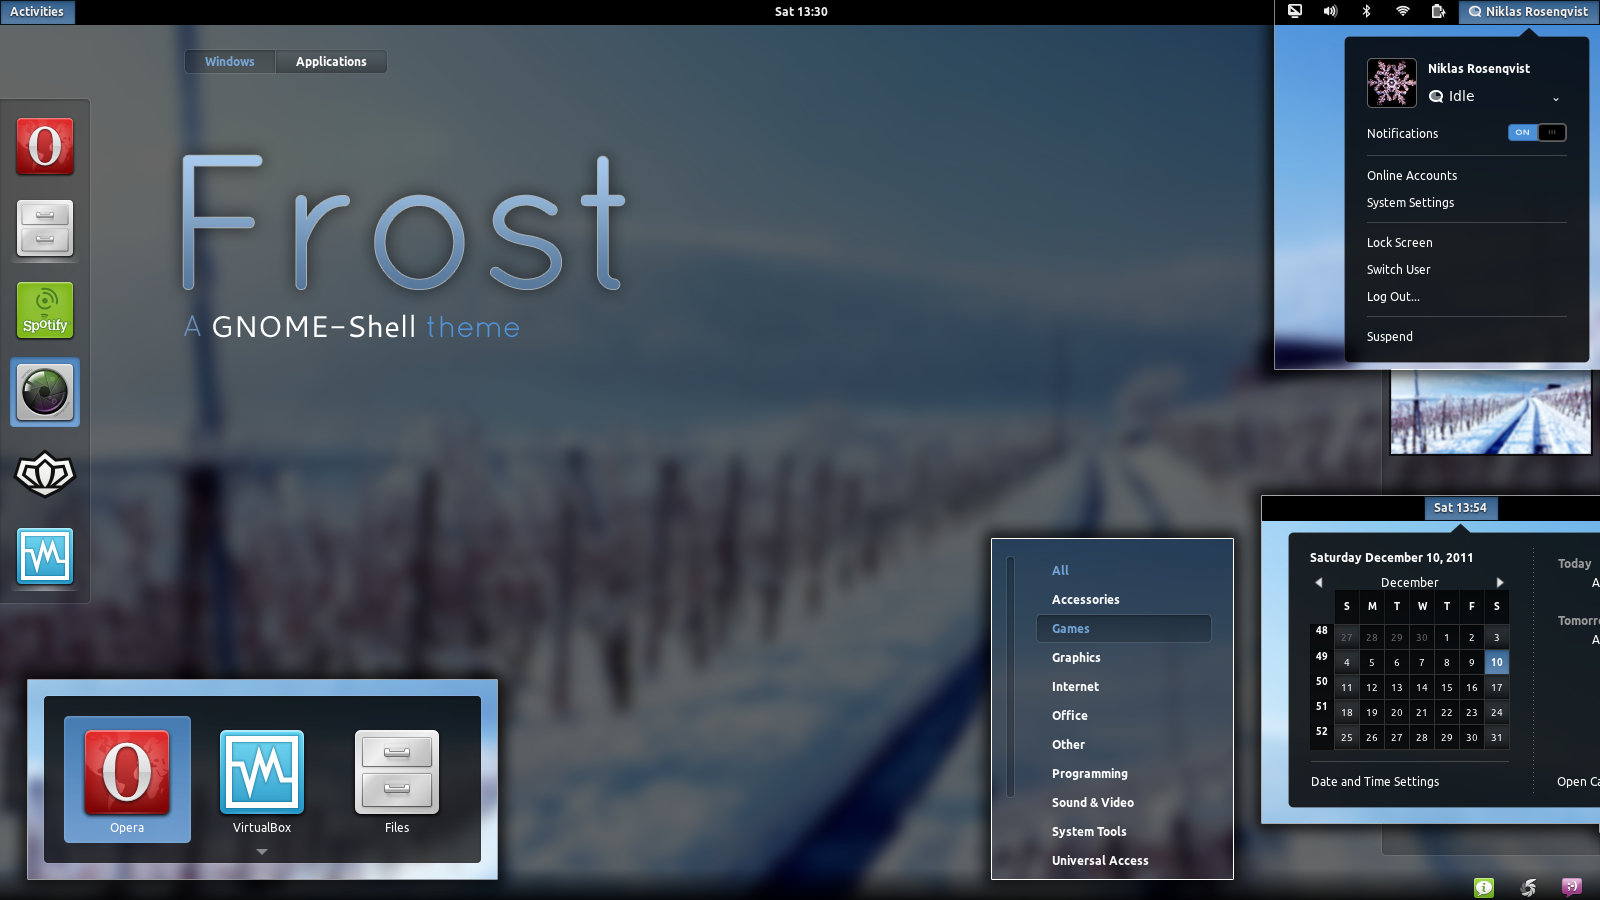 Frost - GNOME-Shell theme by nsrosenqvist on DeviantArt